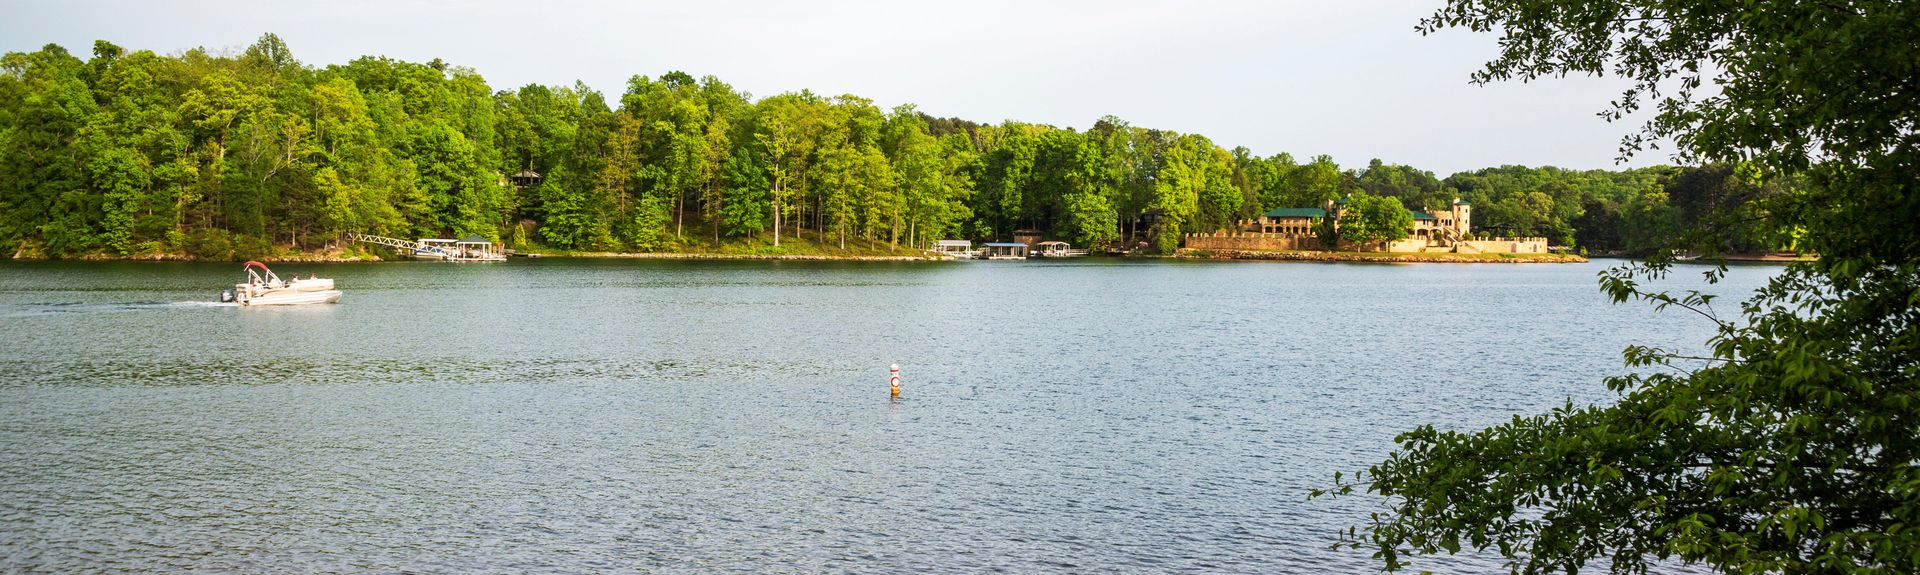 Lake Keowee, South Carolina, USA